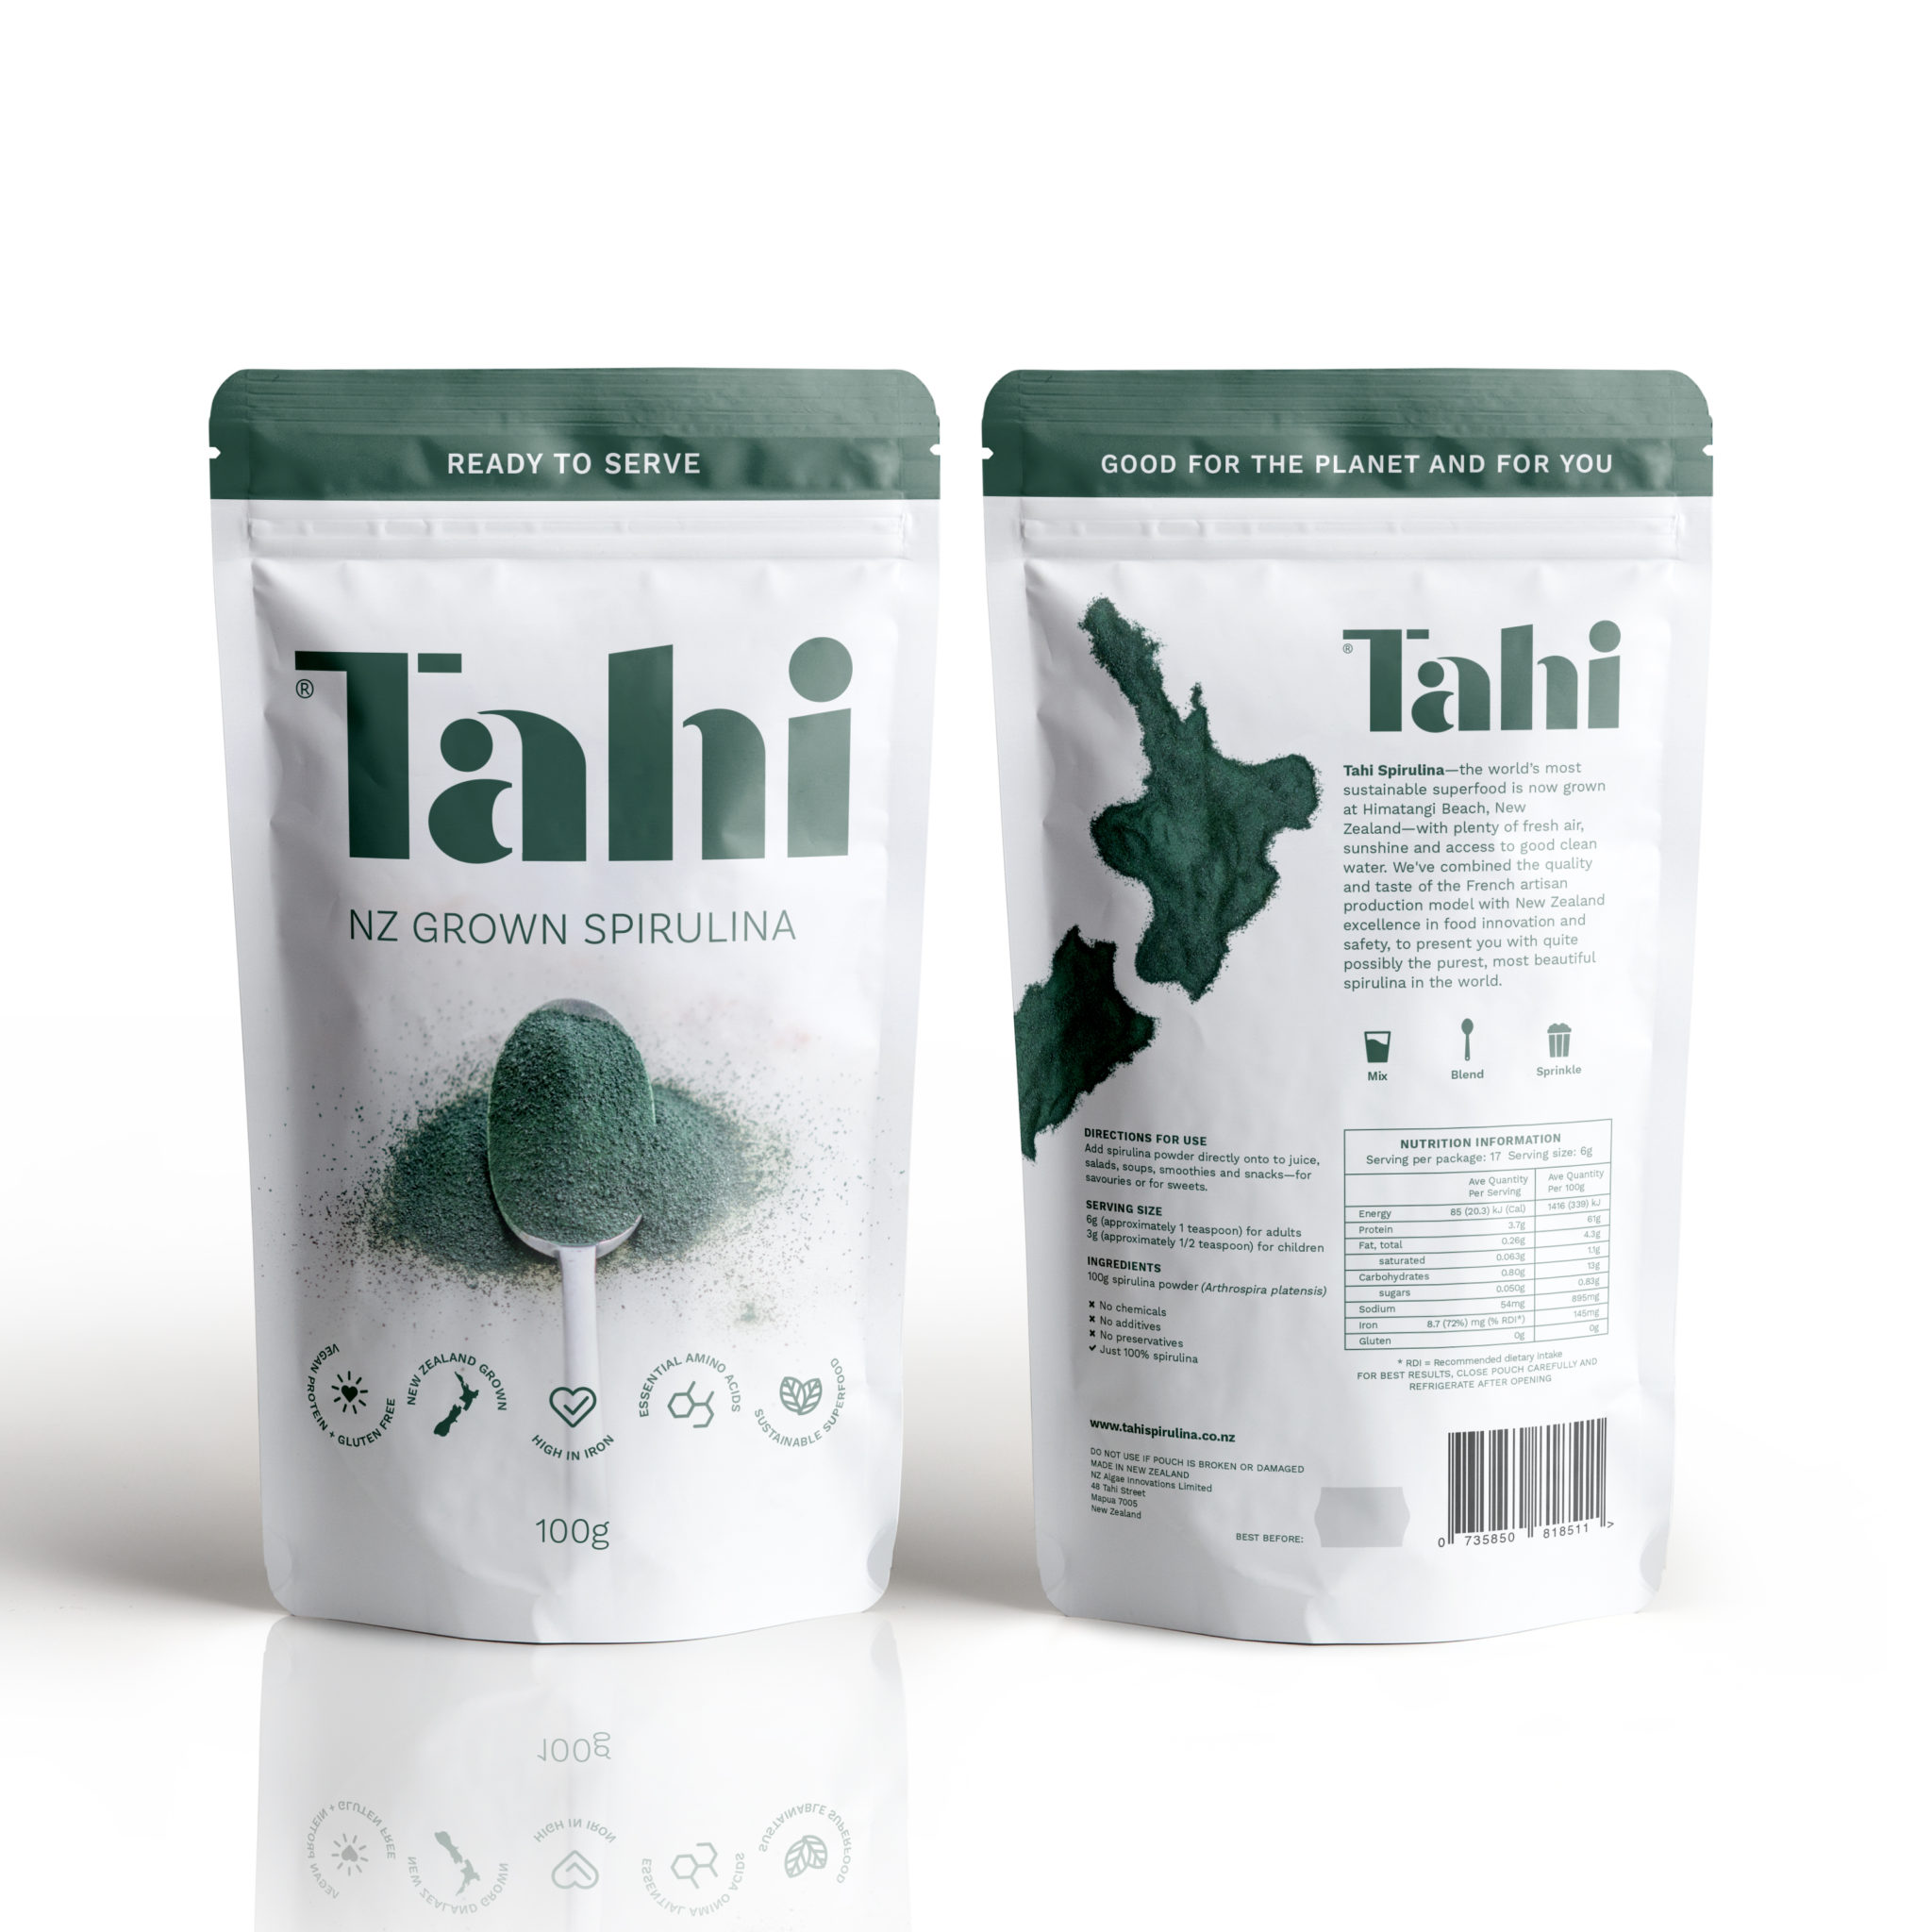 Tahi Spirulina is now available for worldwide delivery via HealthPost